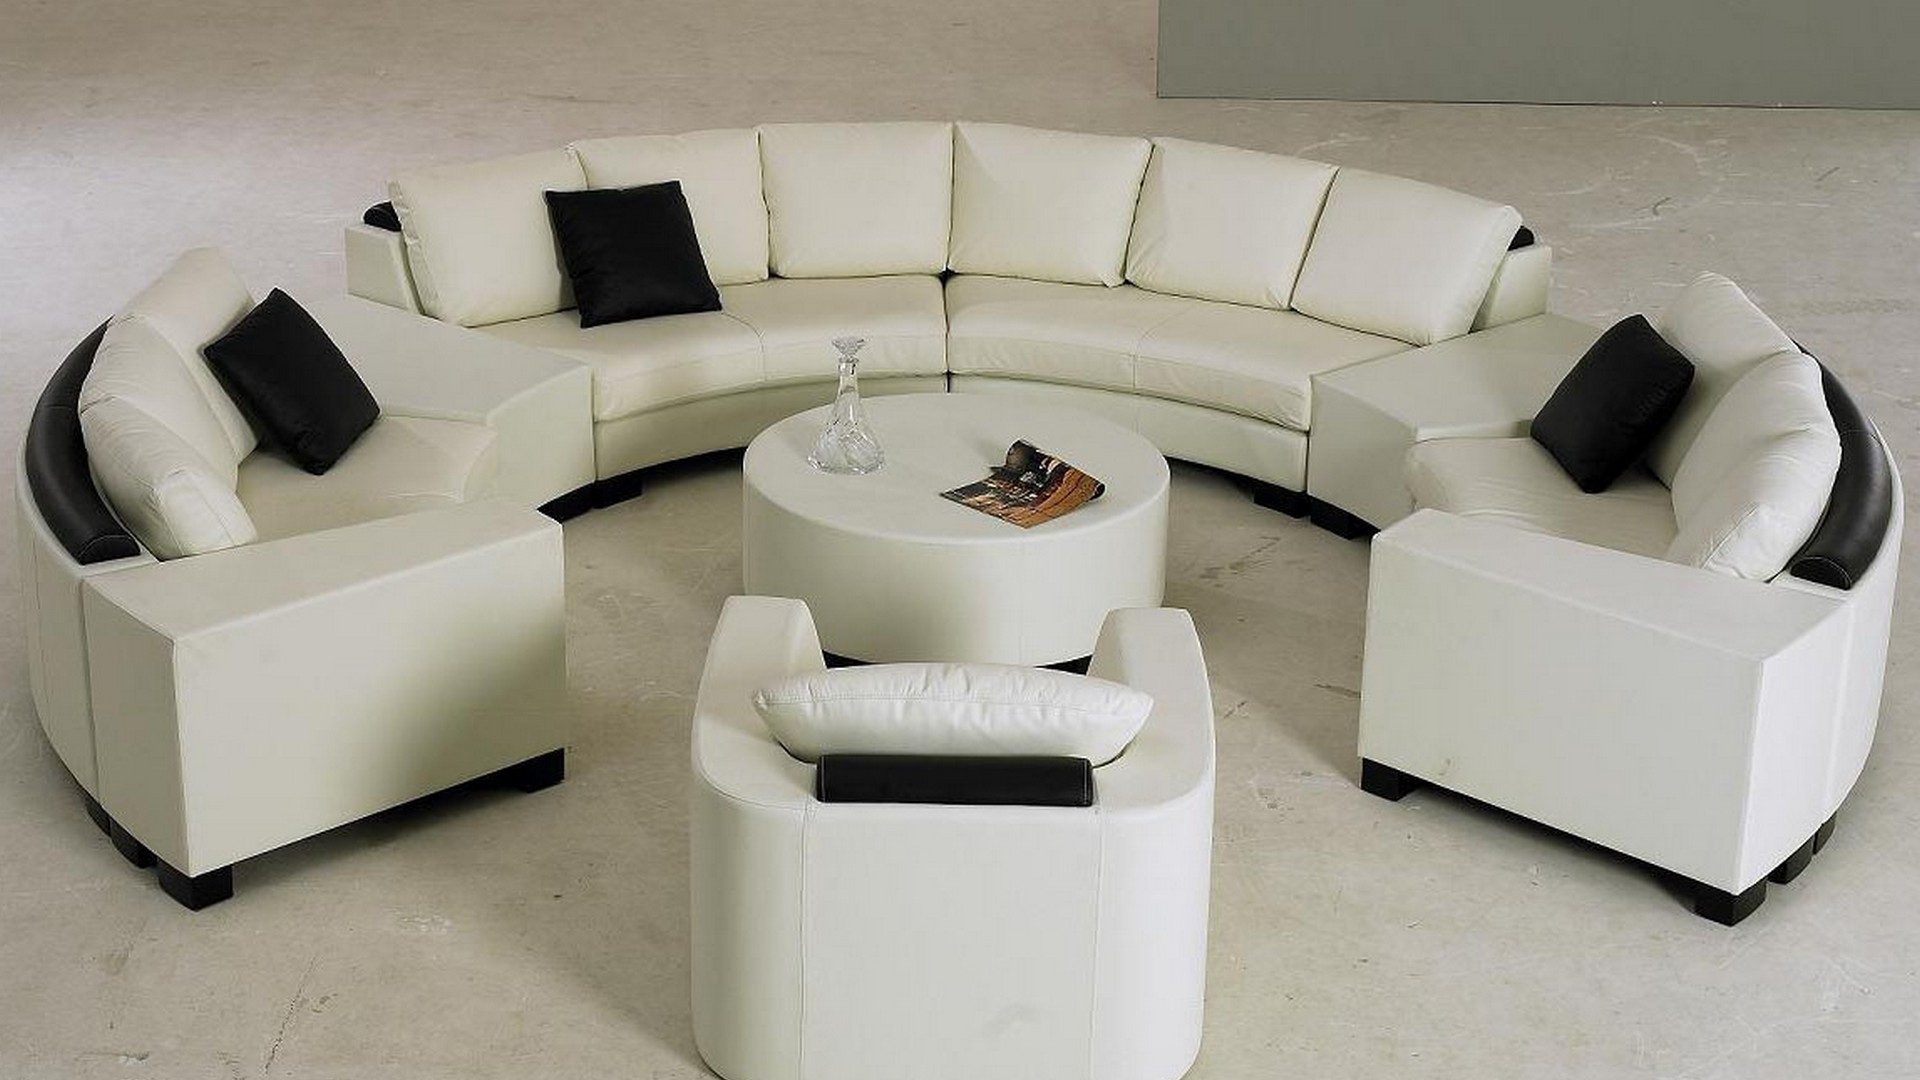 Popular Round Sofas Pertaining To Engagng White Half Round Sofa With Black Pillows And Rond Table (View 9 of 15)